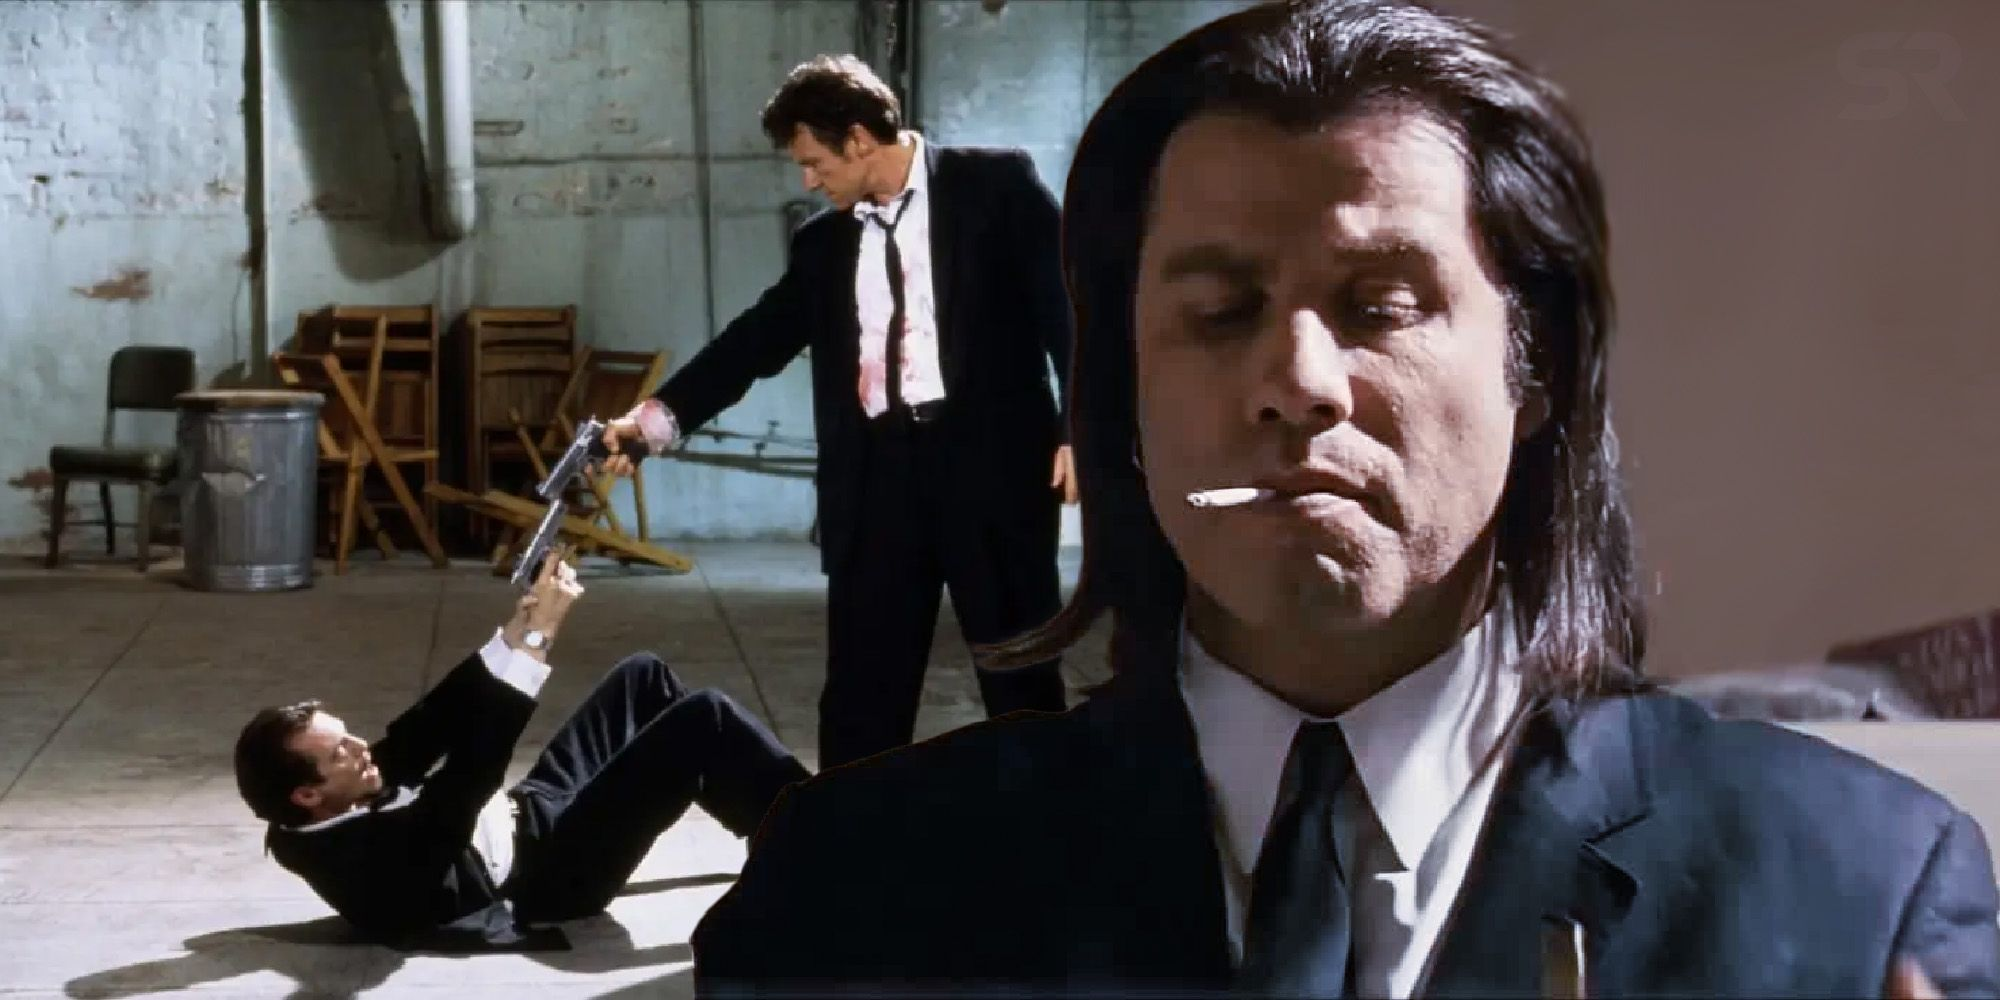 Tarantino Theory: Pulp Fiction Is A Prequel To Reservoir Dogs